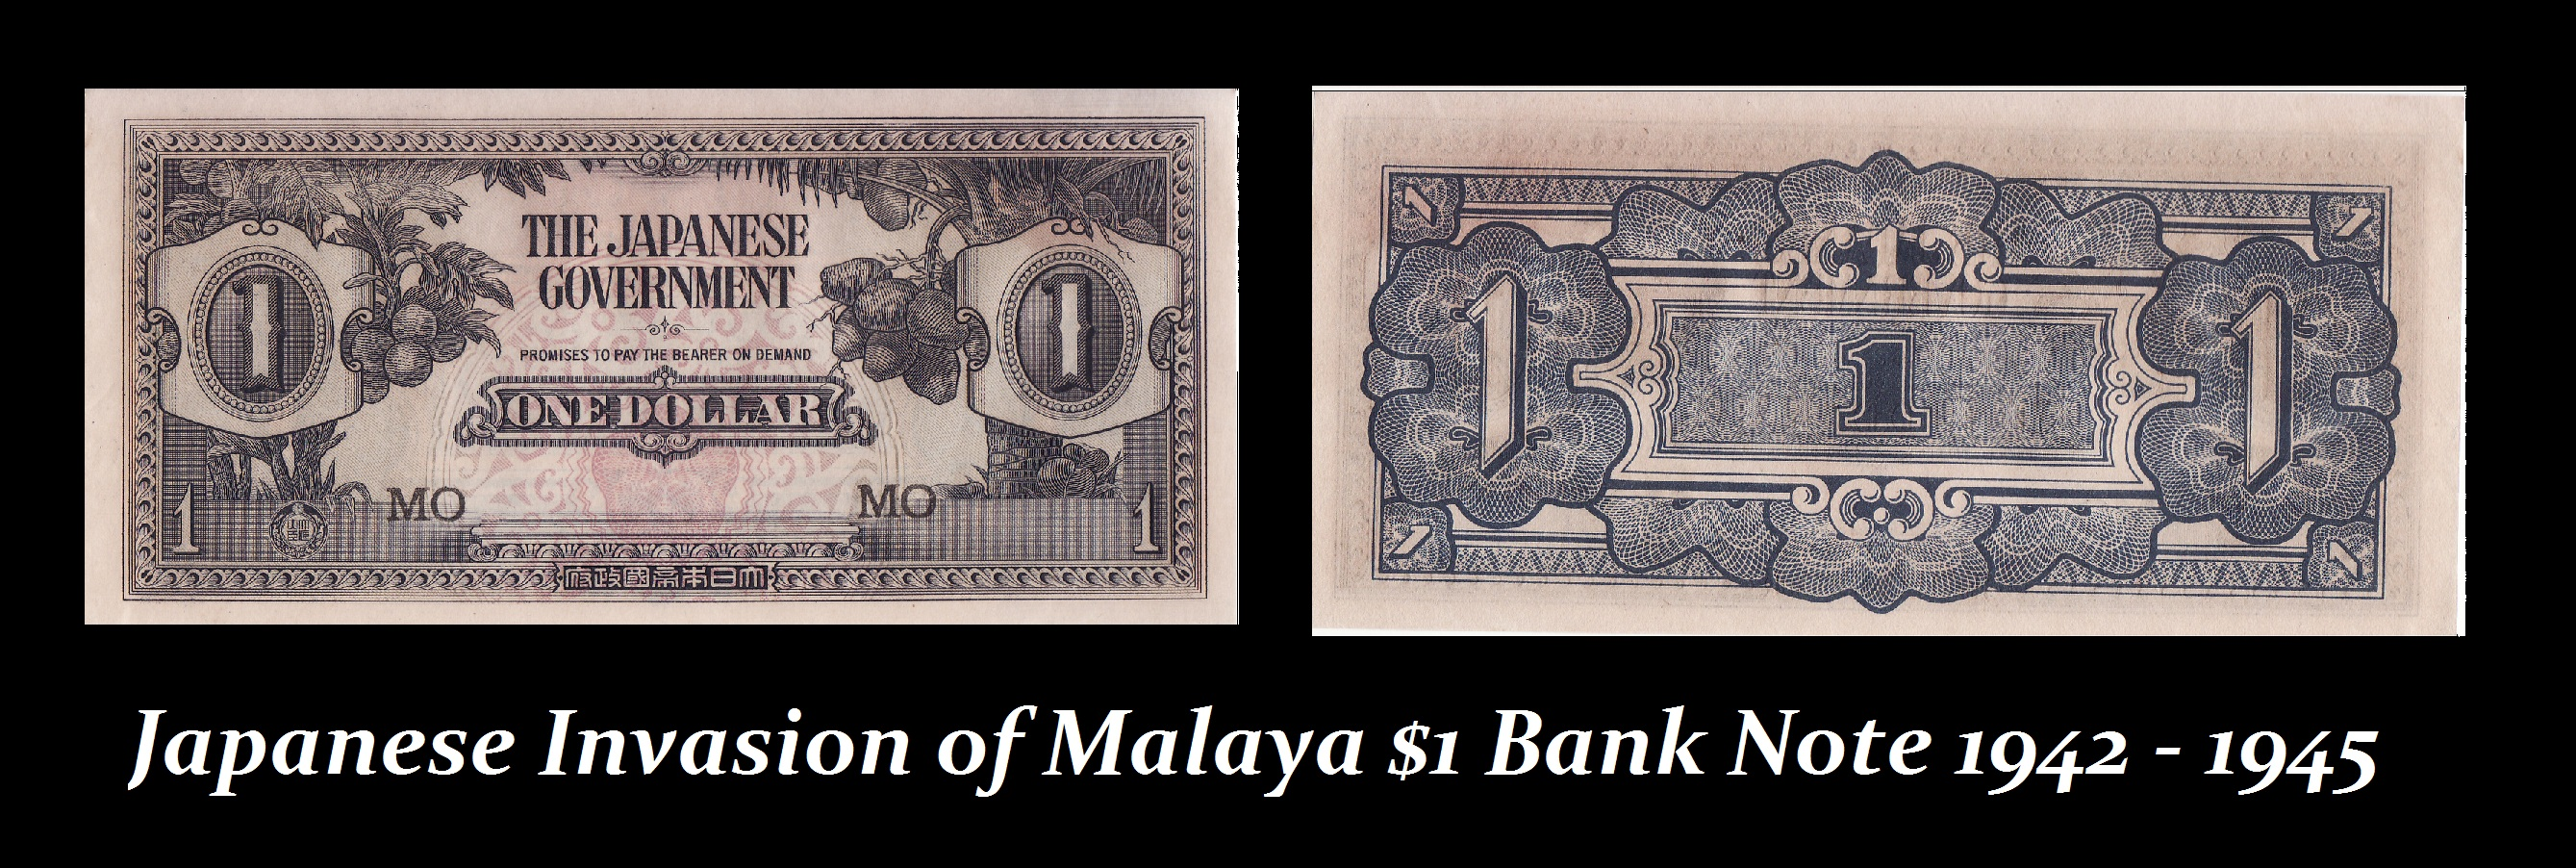 Japanese Invasion of Malaya $1 Bank Note 1942 - 1945